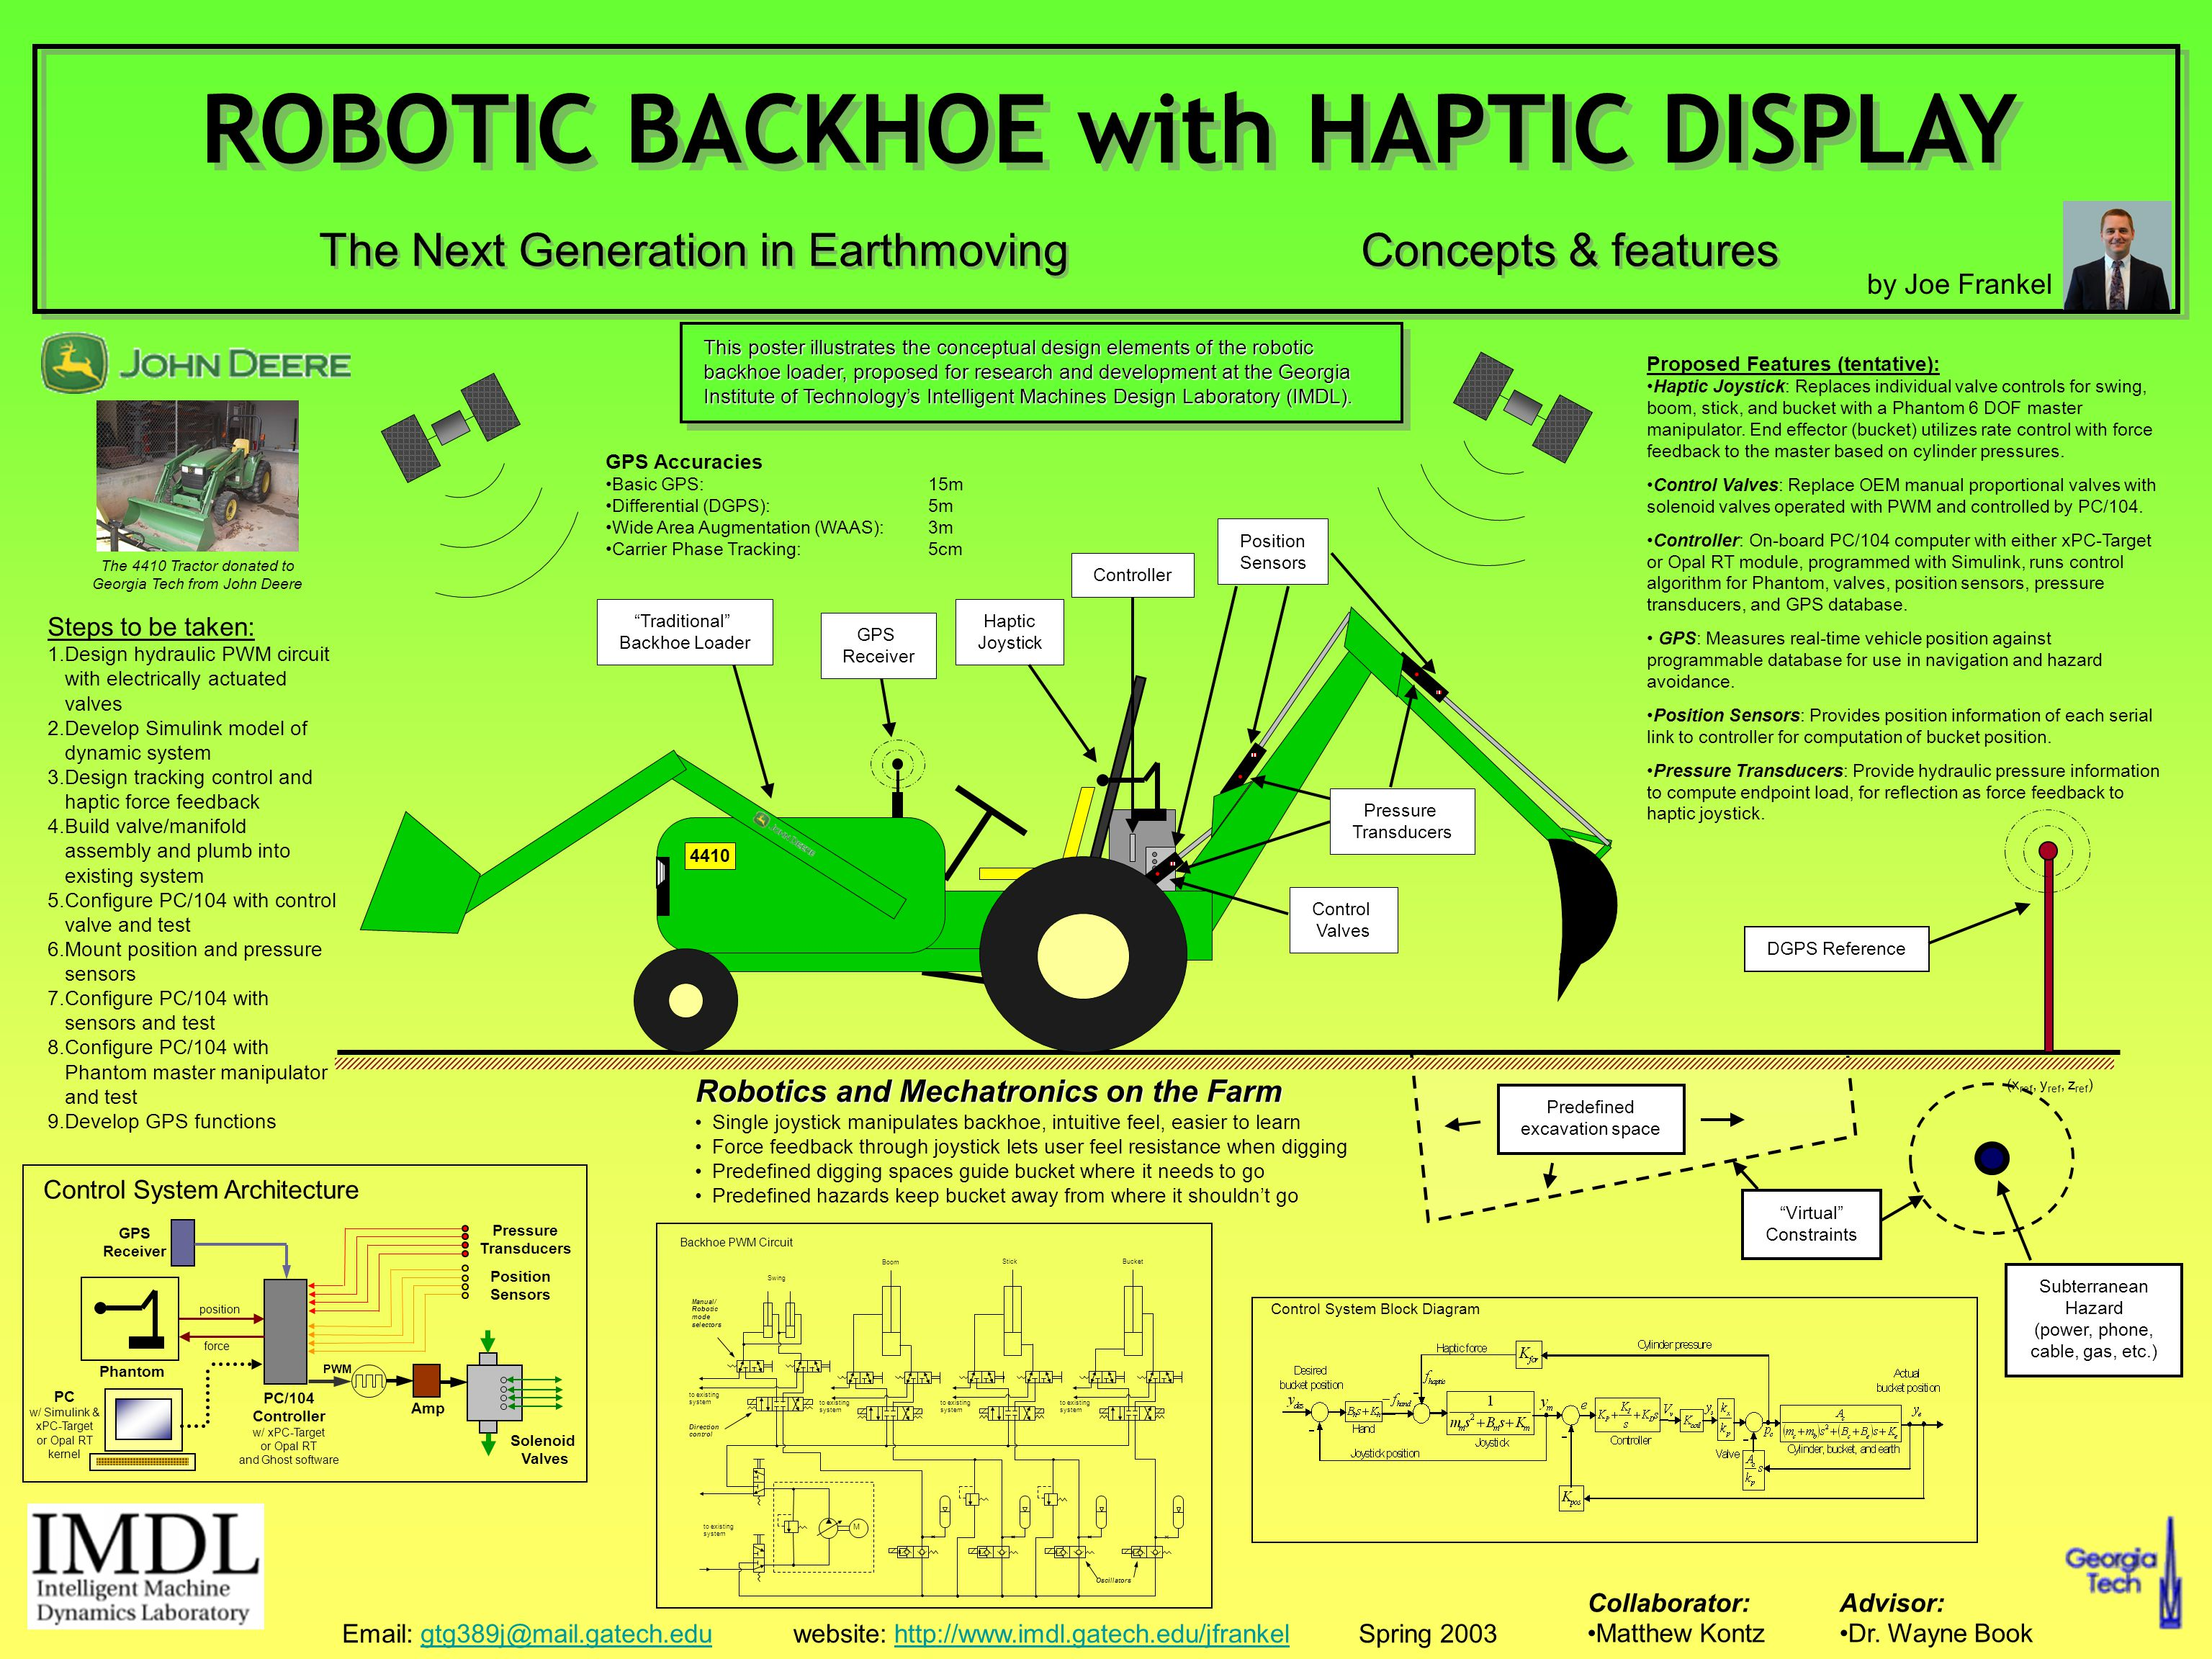 Traditional Backhoe Loader Haptic Joystick GPS Receiver Controller Control Valves Position Sensors Concepts & features 4410 Subterranean Hazard (power, phone, cable, gas, etc.) Virtual Constraints Predefined excavation space by Joe Frankel This poster illustrates the conceptual design elements of the robotic backhoe loader, proposed for research and development at the Georgia Institute of Technology's Intelligent Machines Design Laboratory (IMDL).